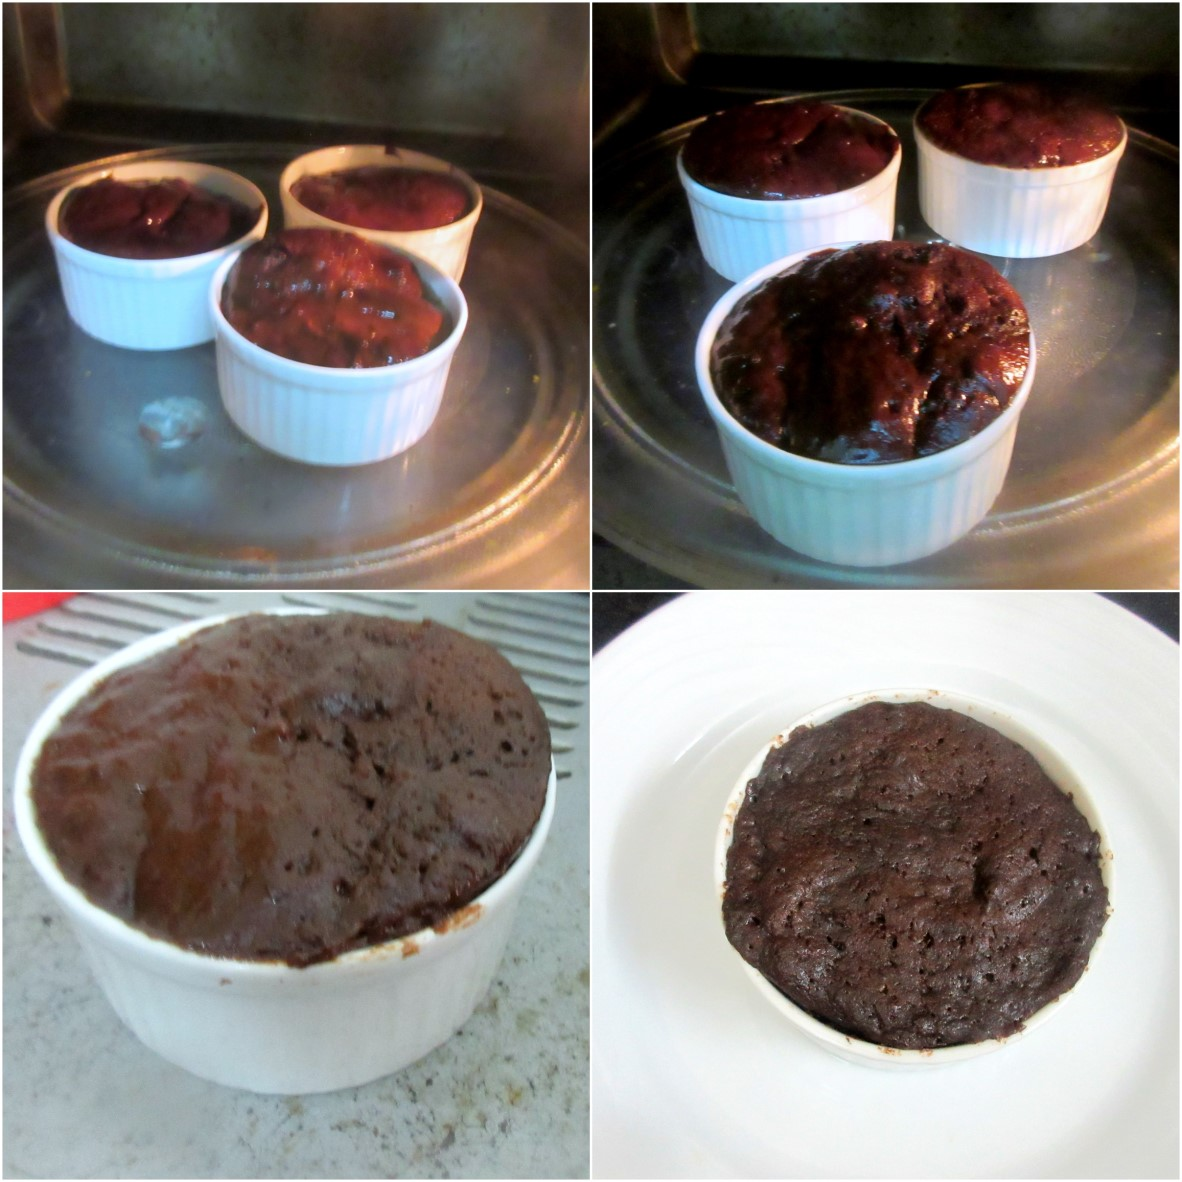 How to make Stuffed Nutella Chocolate Mug Cake 4